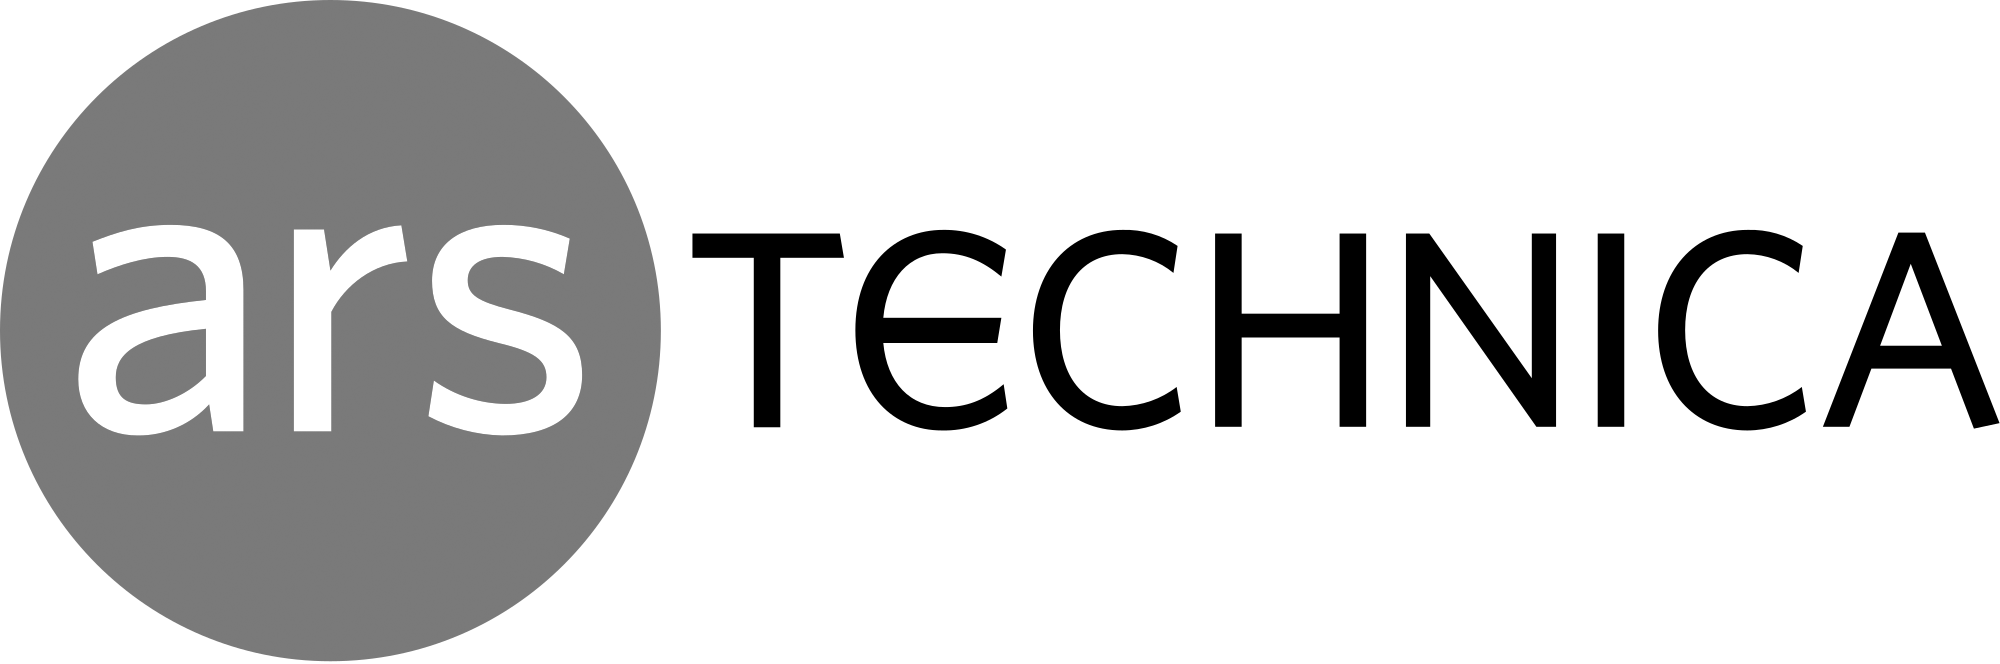 Ars Technica - Logo - Grayscale.png